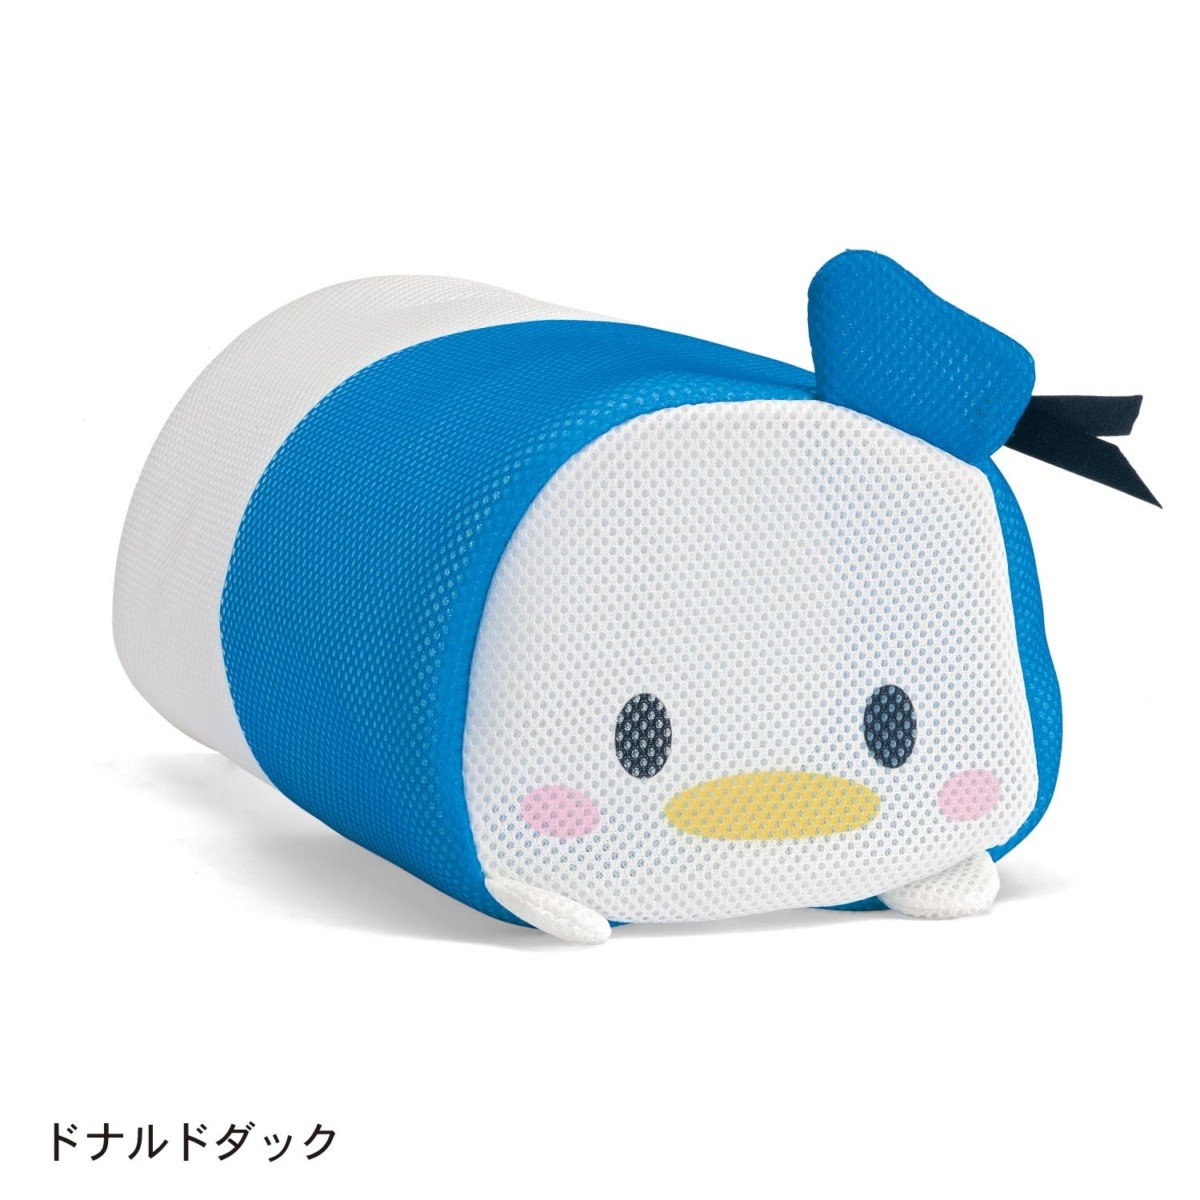 Made in Japan Disney Tsum Tsum Laundry Net - Donald Duck